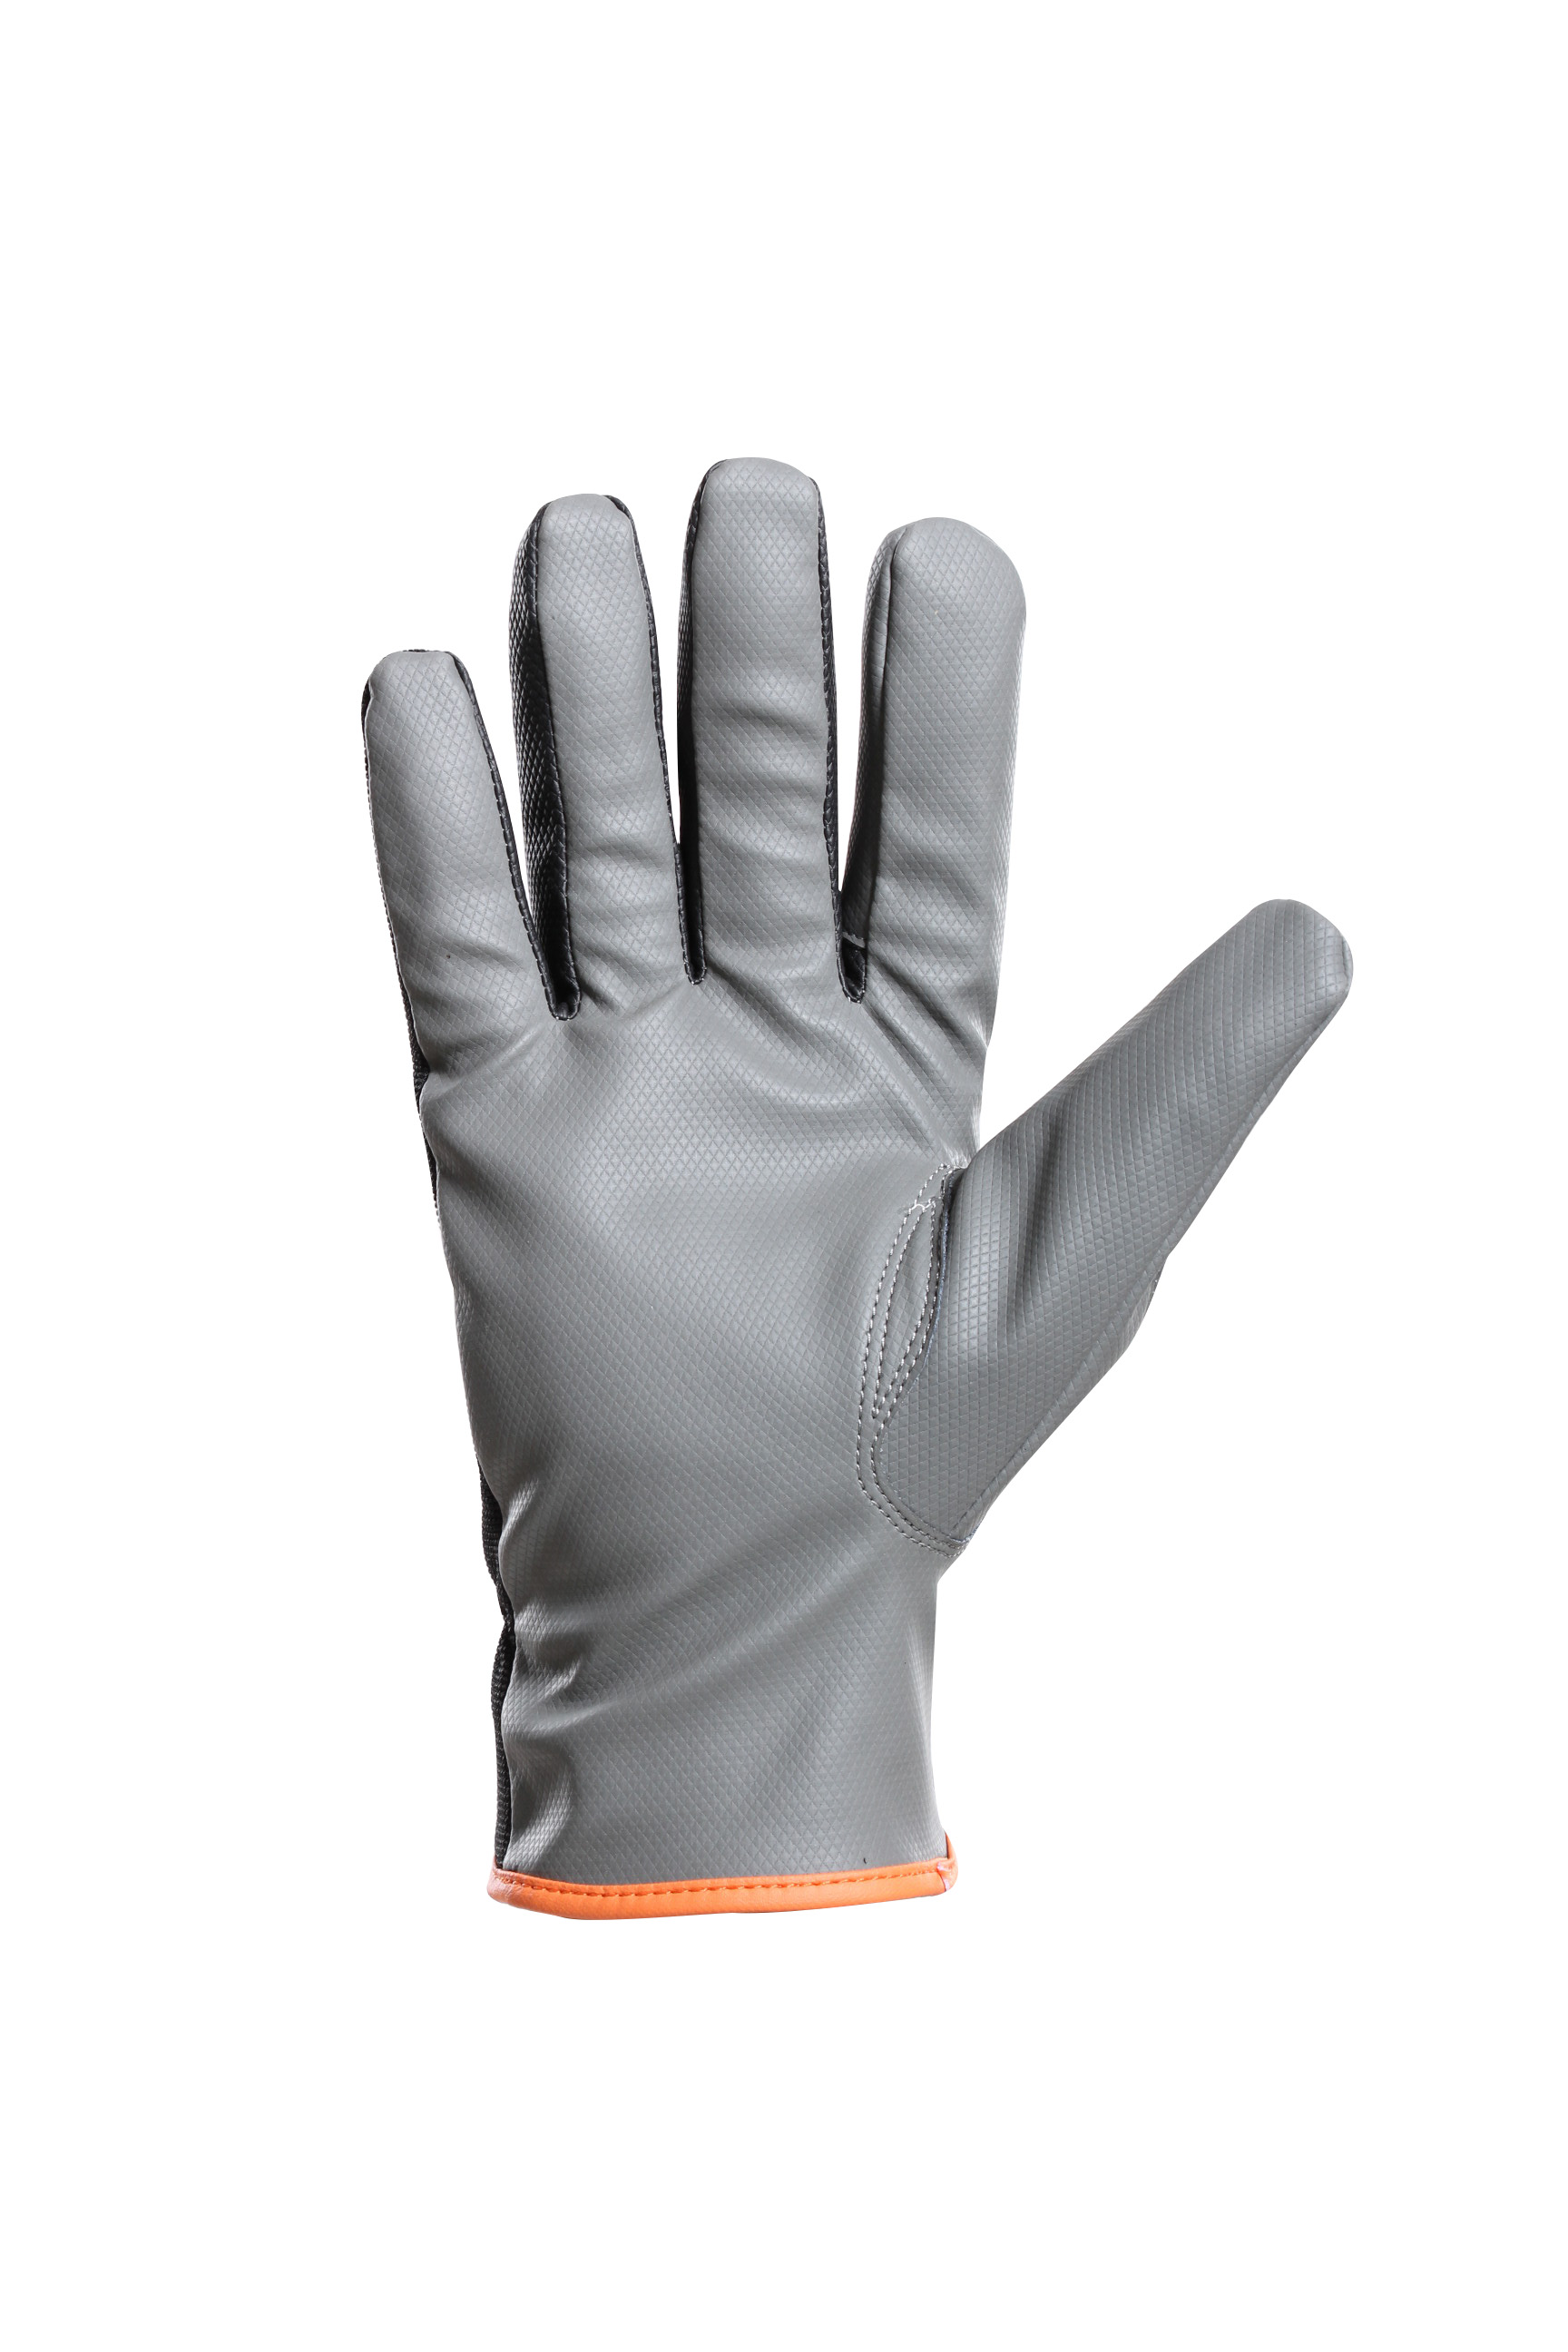 adults cycling gloves